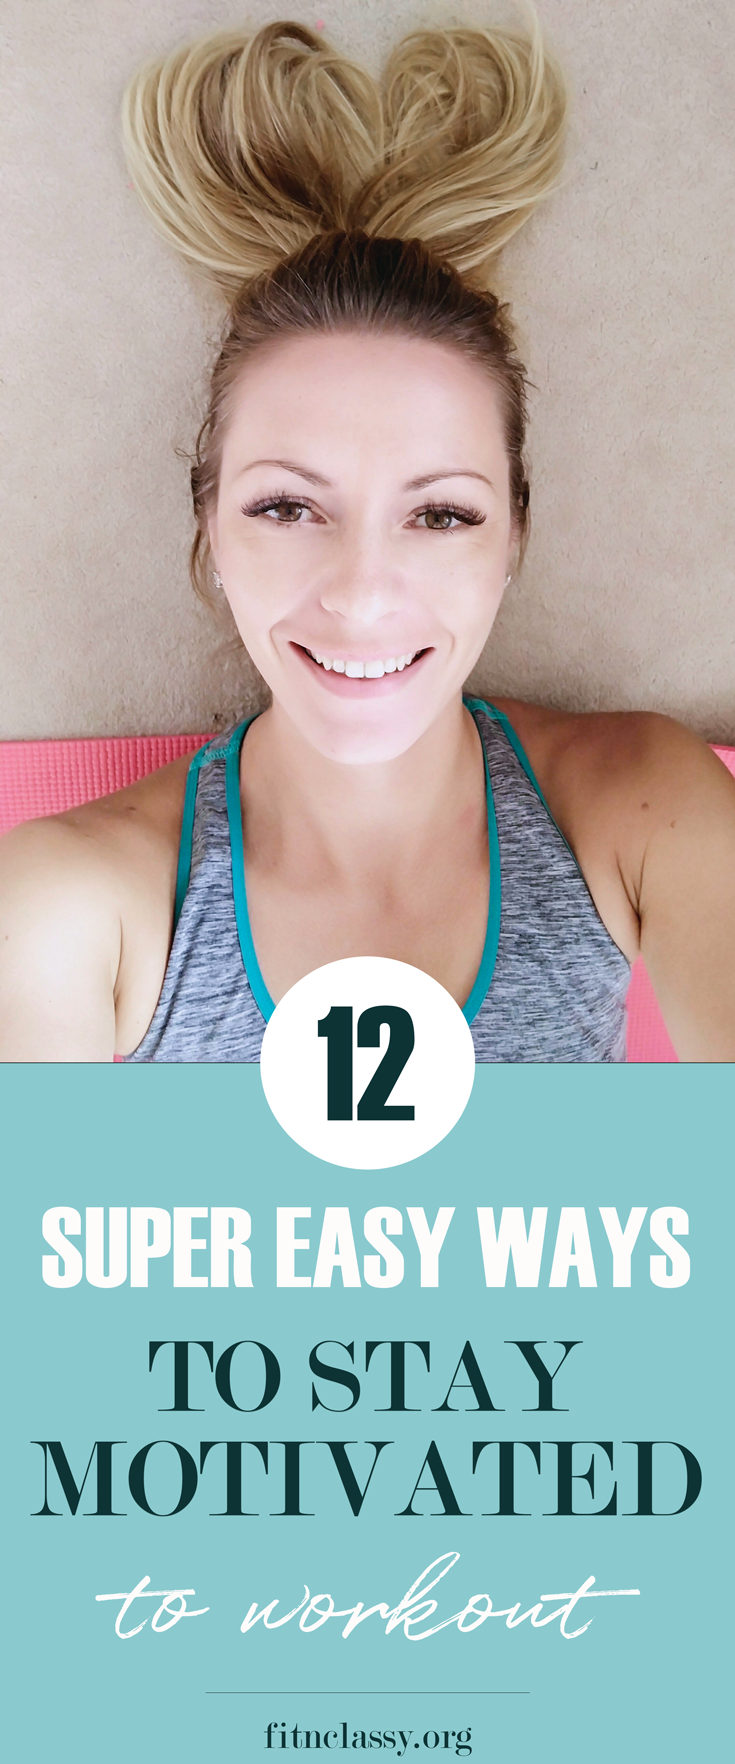 12 Super-Easy Ways To Stay Motivated ToWorkout #fitness #motivation #goals #fitnesstips #lifestyle